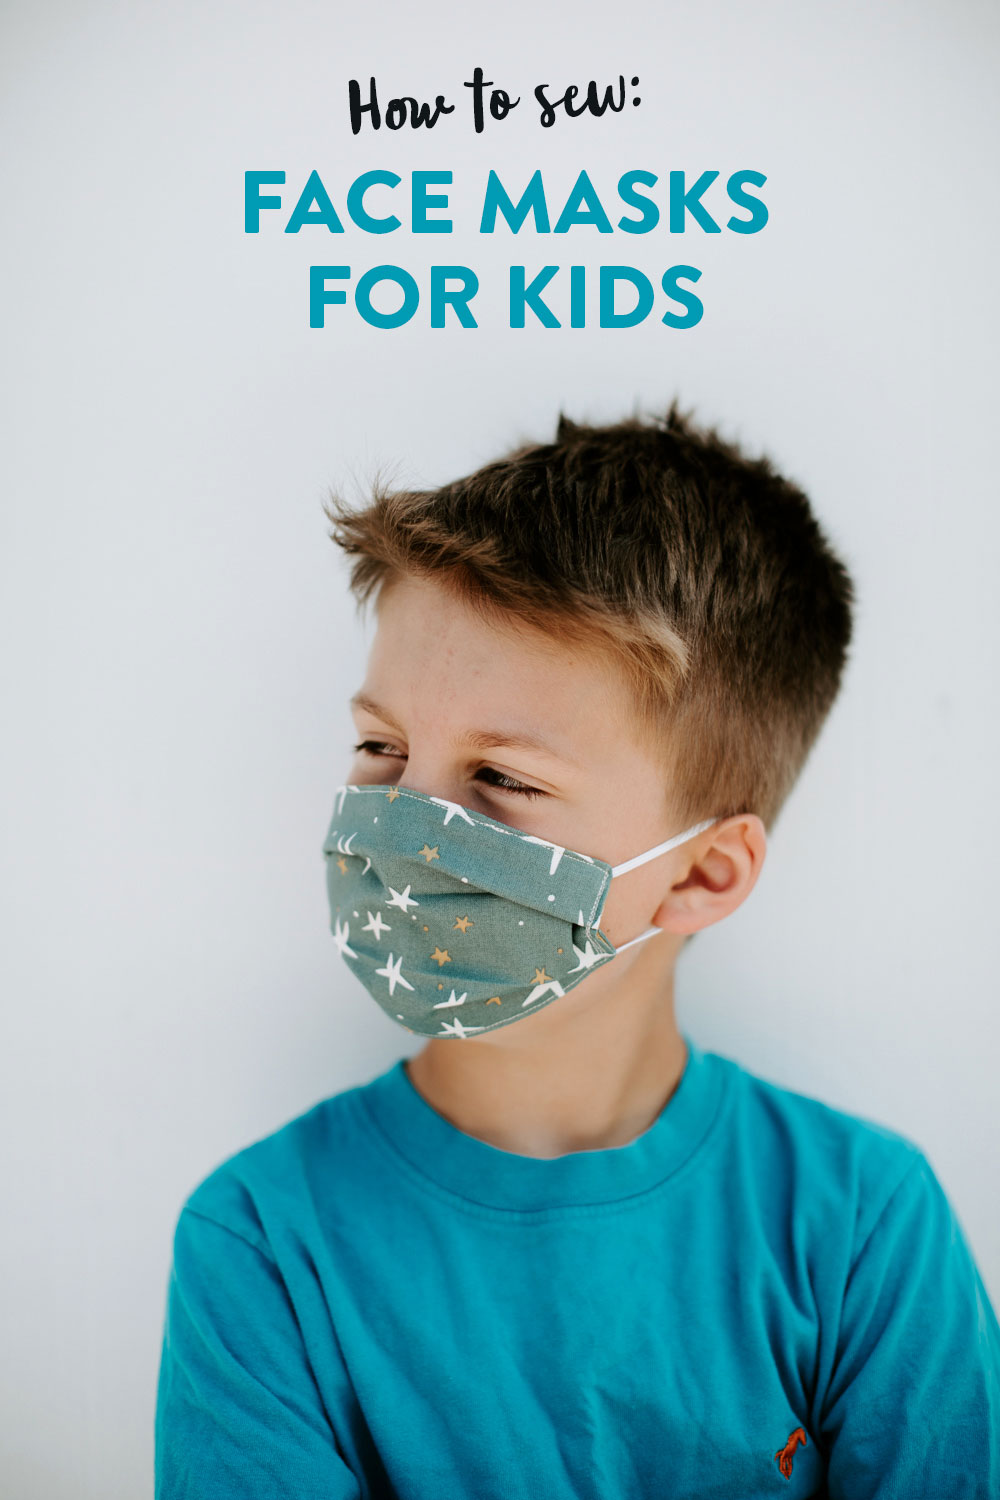 Learn how to make comfortable face masks for kids in this easy sewing tutorial! All you need is a little bit of fabric and some elastic. suzyquilts.com #facemasks #kidfacemask